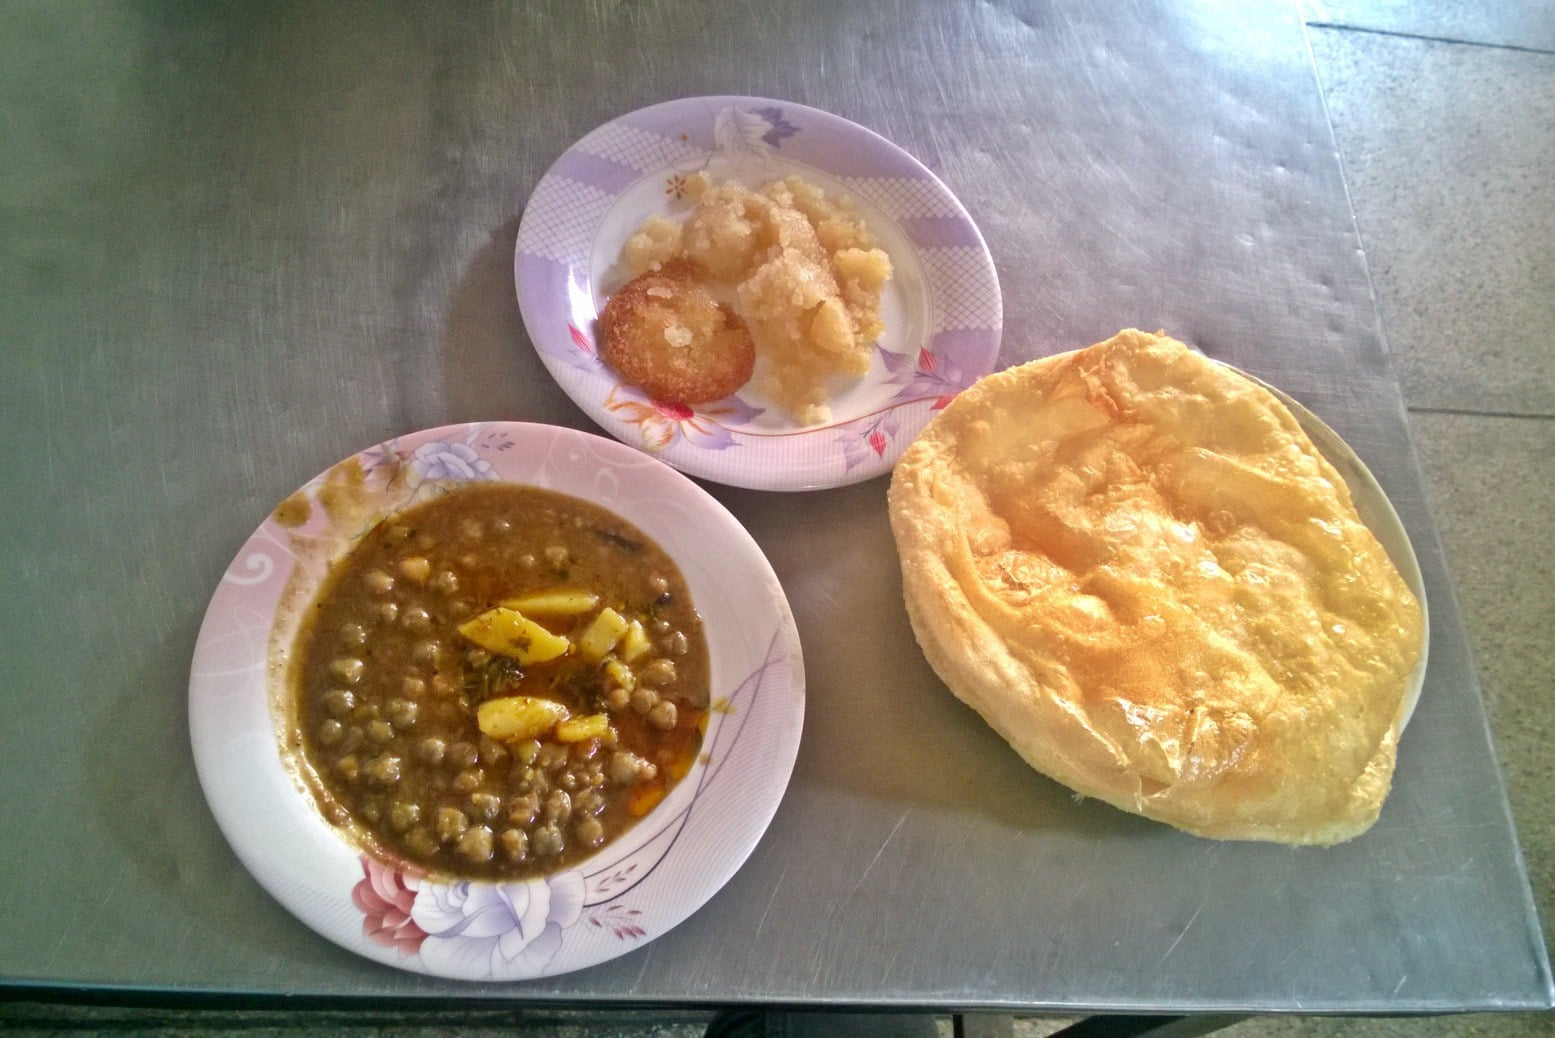 This halwa puri is a treat!